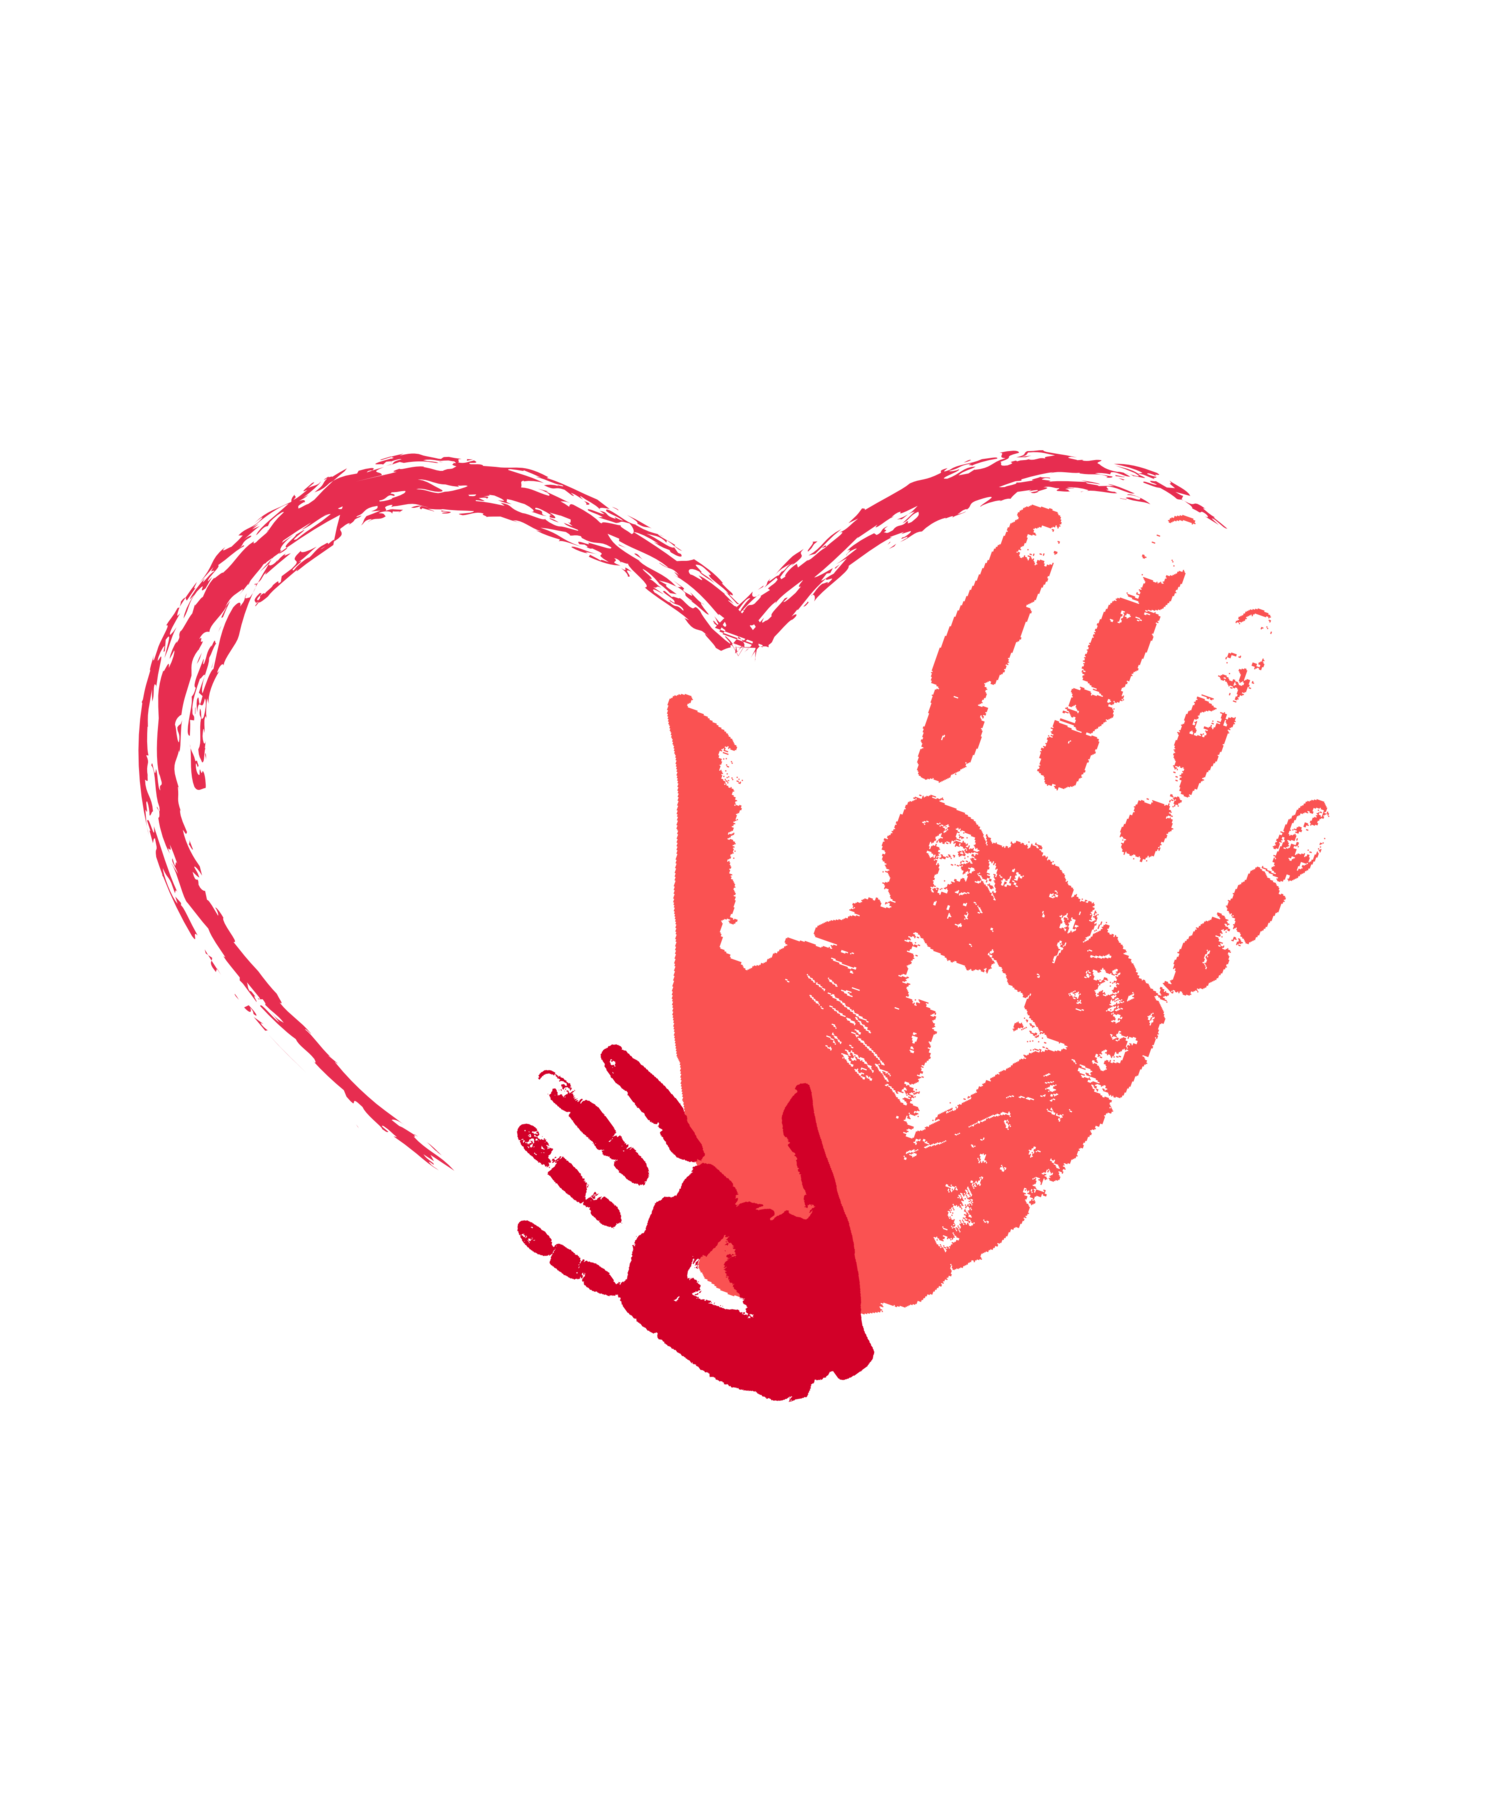 Child handprint with heart png. Mother and hand prints